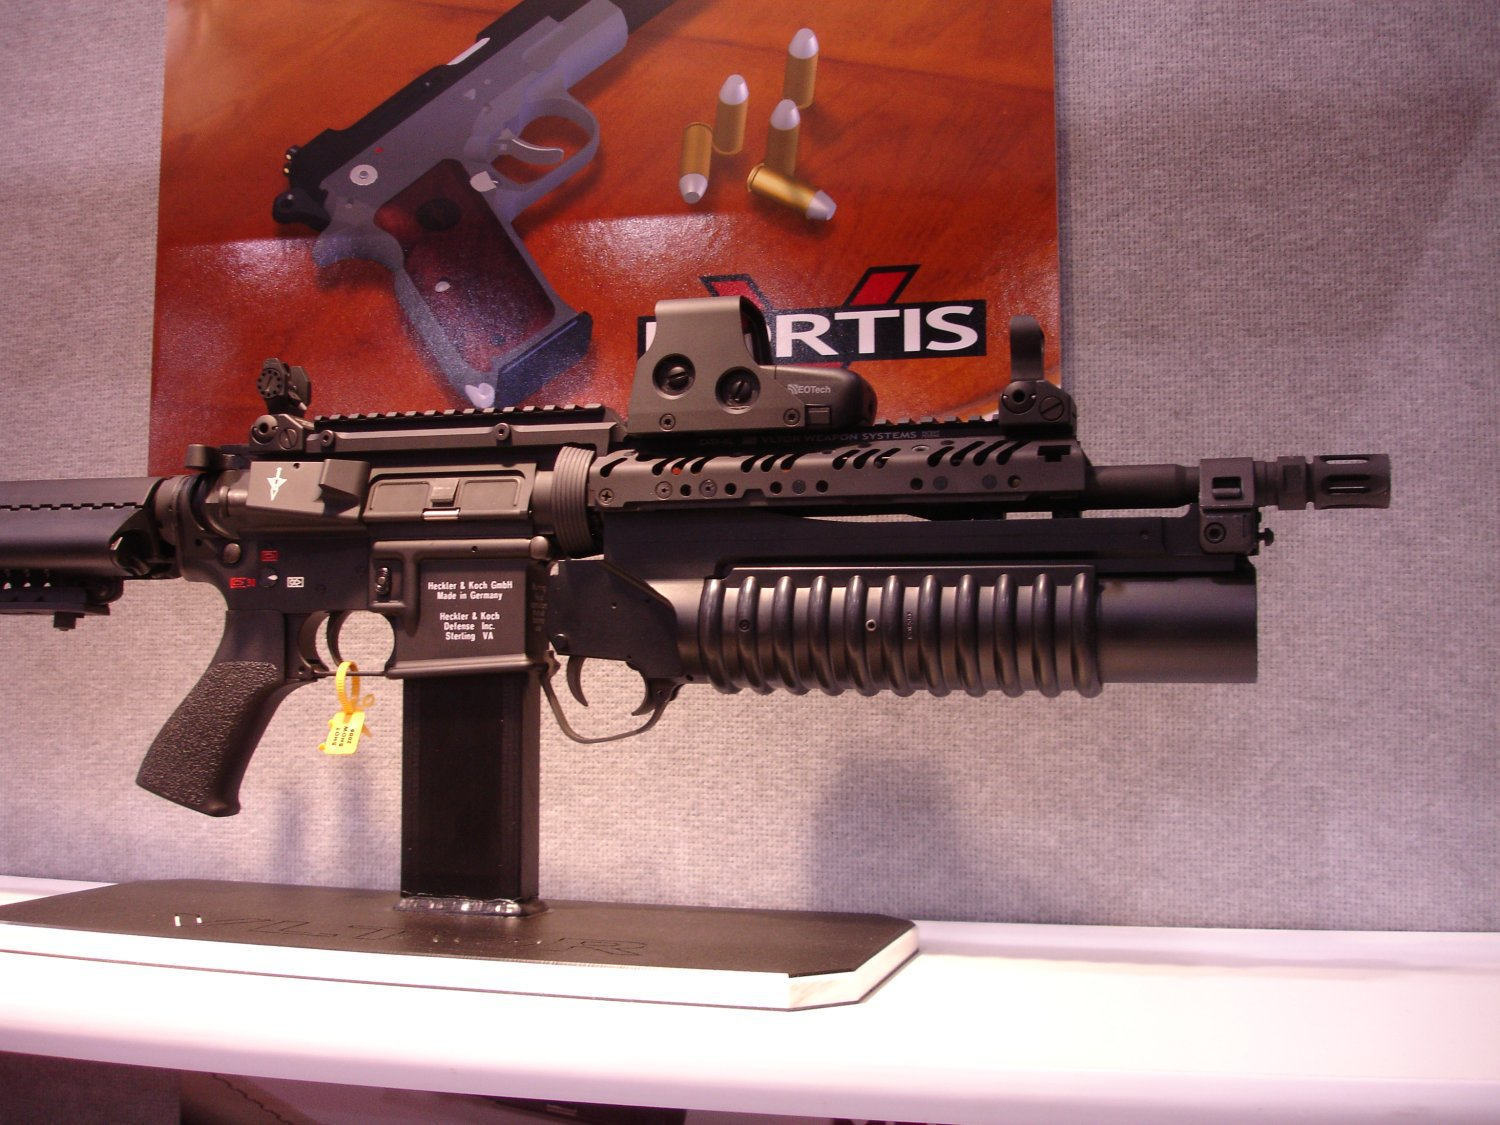 High End Tactical Ar Components Vltor Mur Vis Casv And More